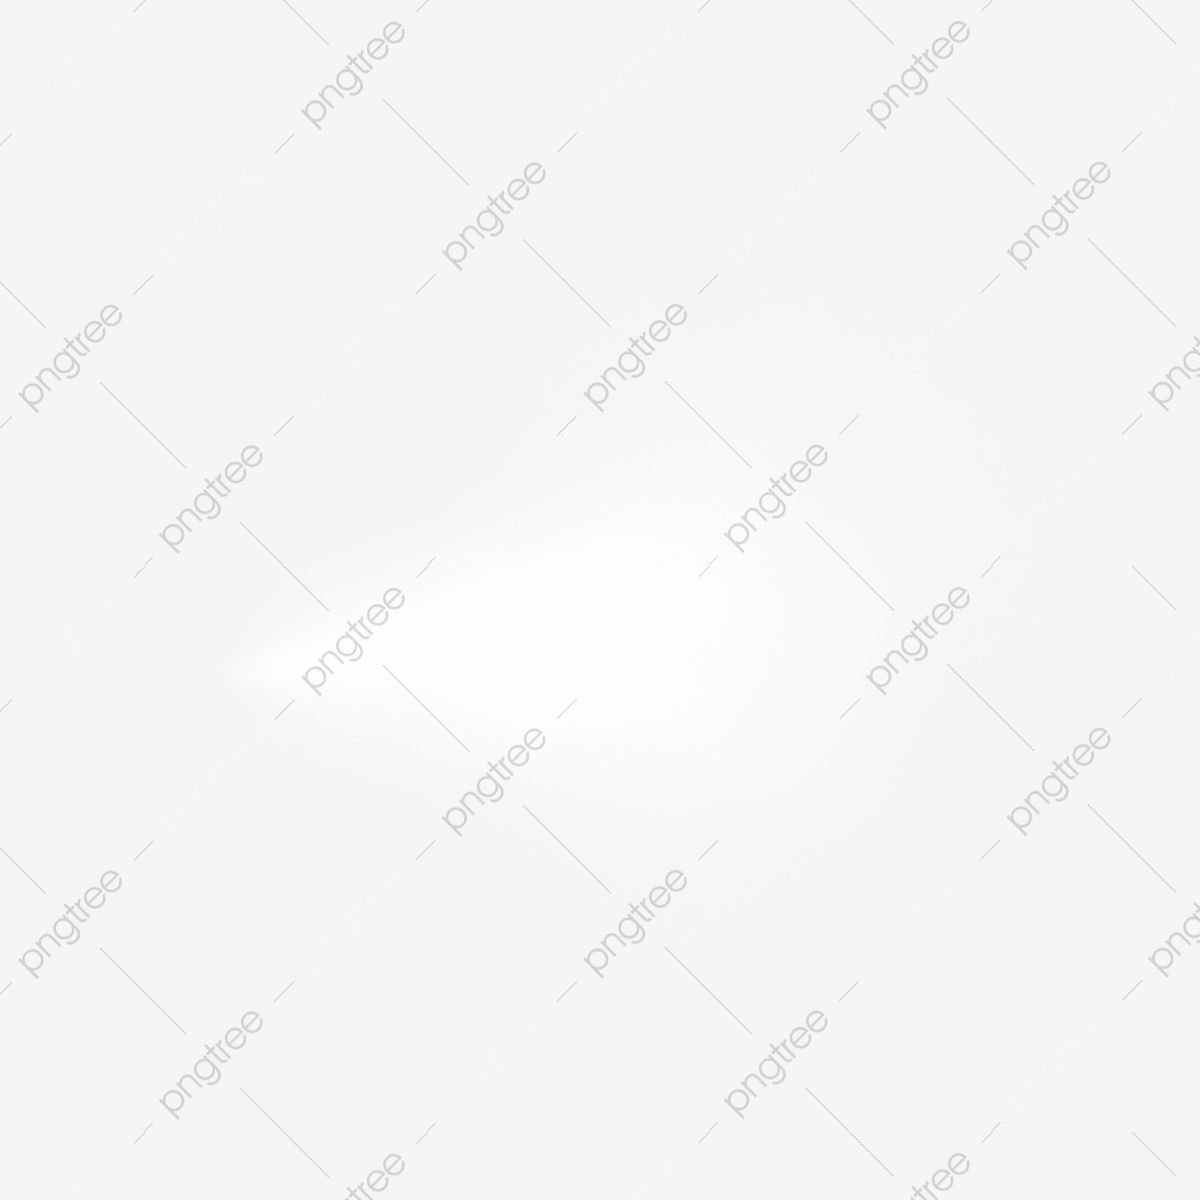 Water Mist Spray Water Fog Special Effects Spray Png Transparent Clipart Image And Psd File For Free Download In 2021 Mist Spray Mists Wave Spray